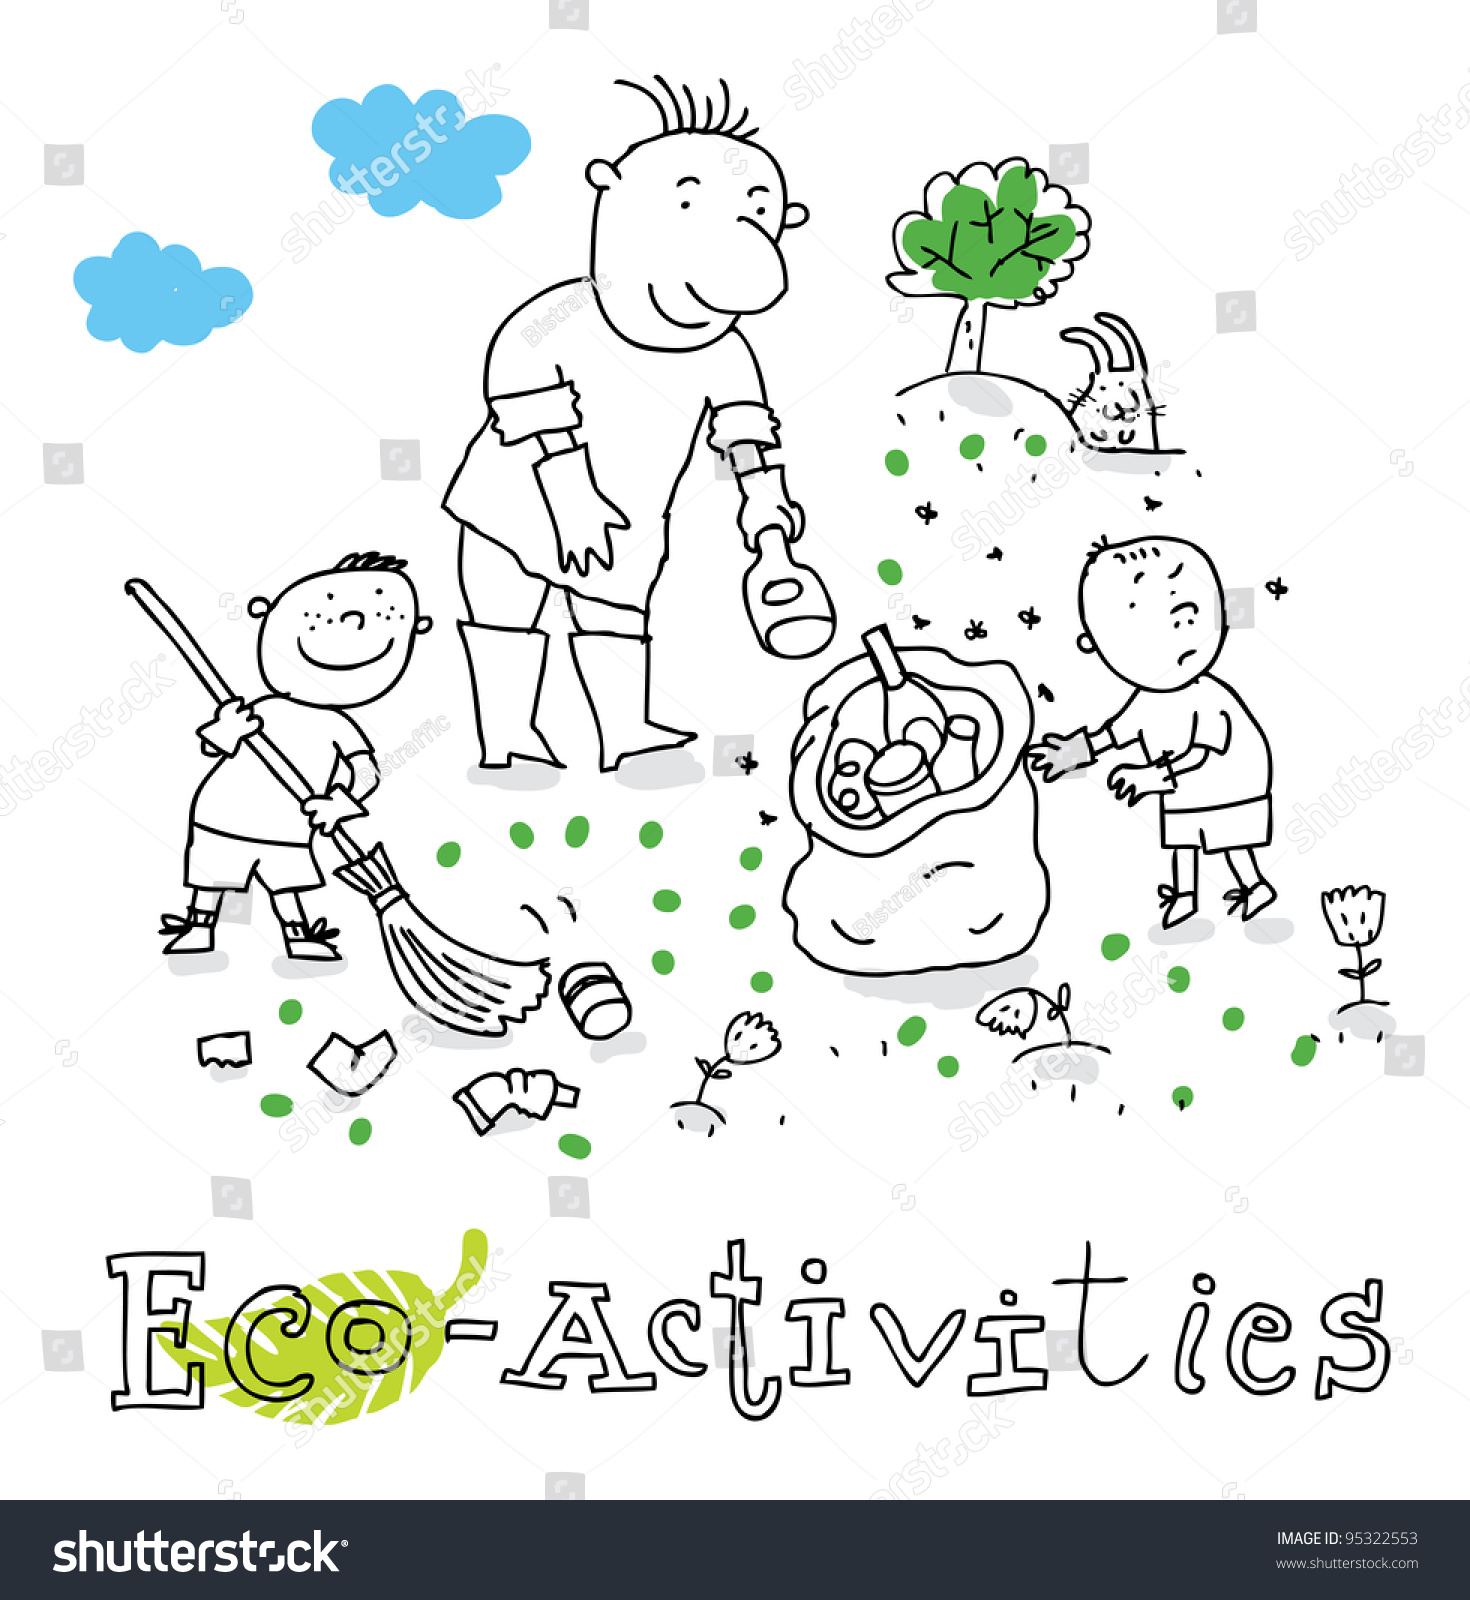 Environmental coloring activities - Eco Activities Ecology And Environment Protection Vector Drawing Isolated On Background